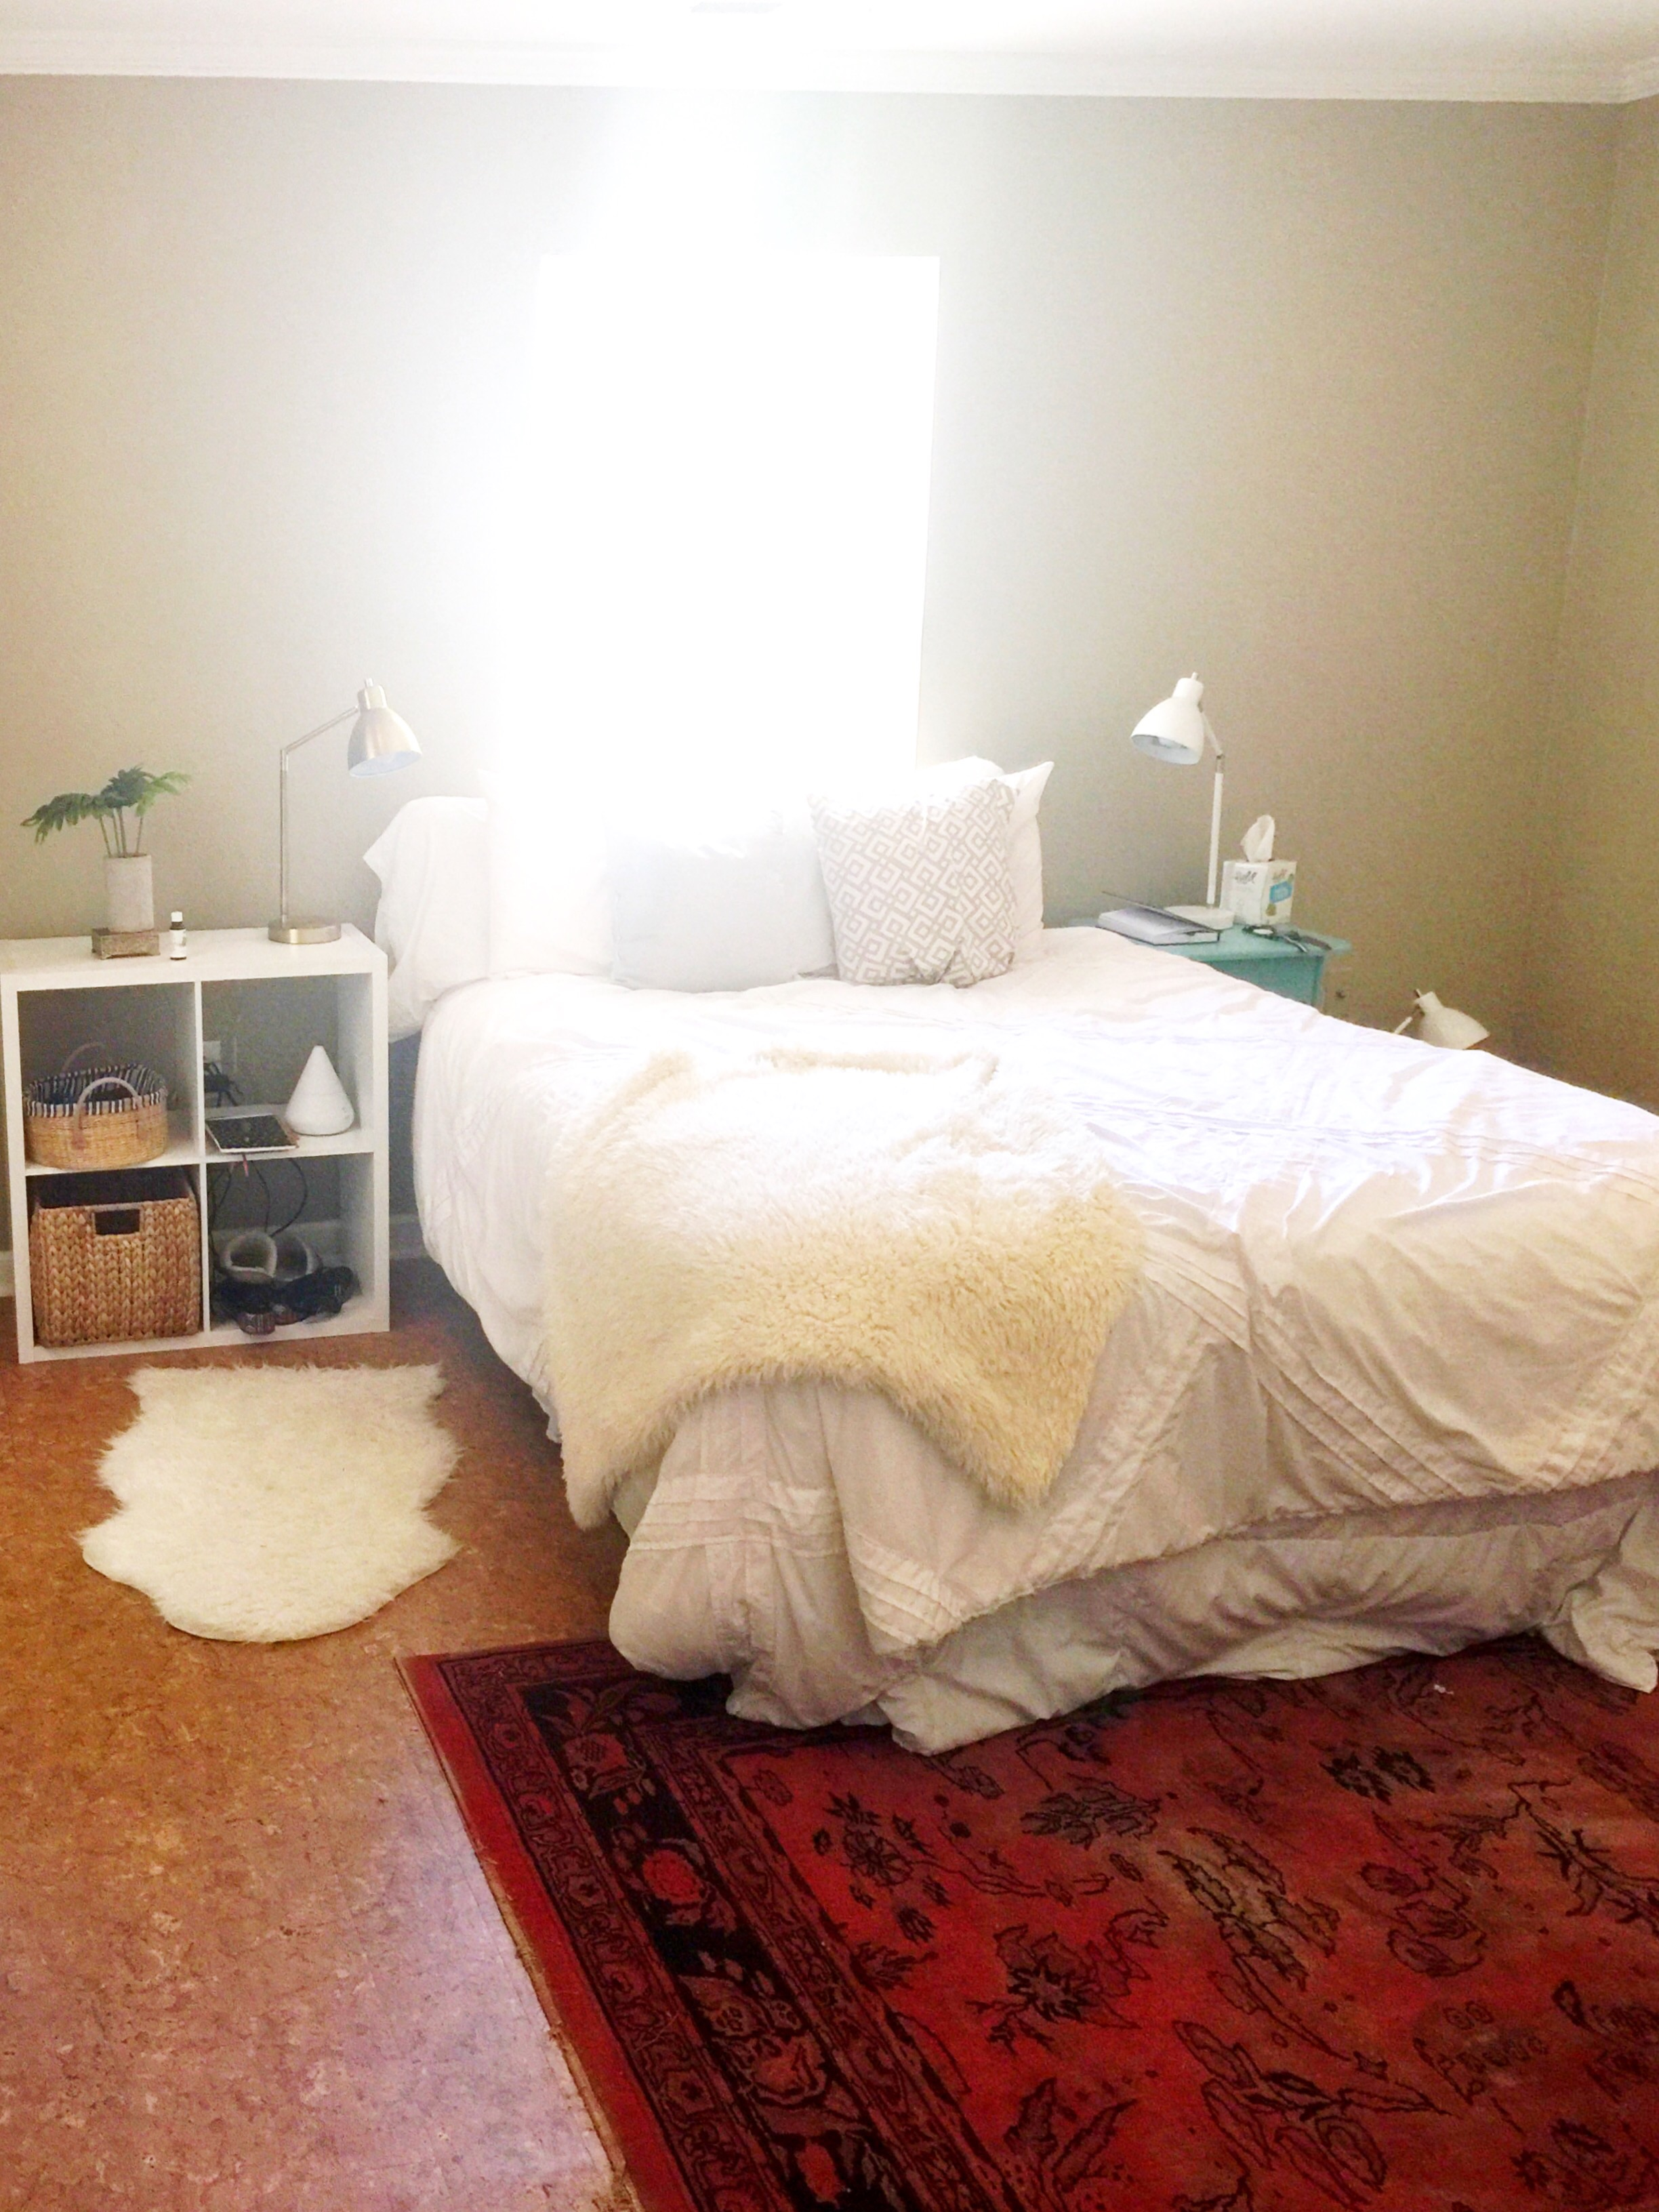 Our bedroom gives me major heart eyes, even though it's far from perfect. We've only been here six days!